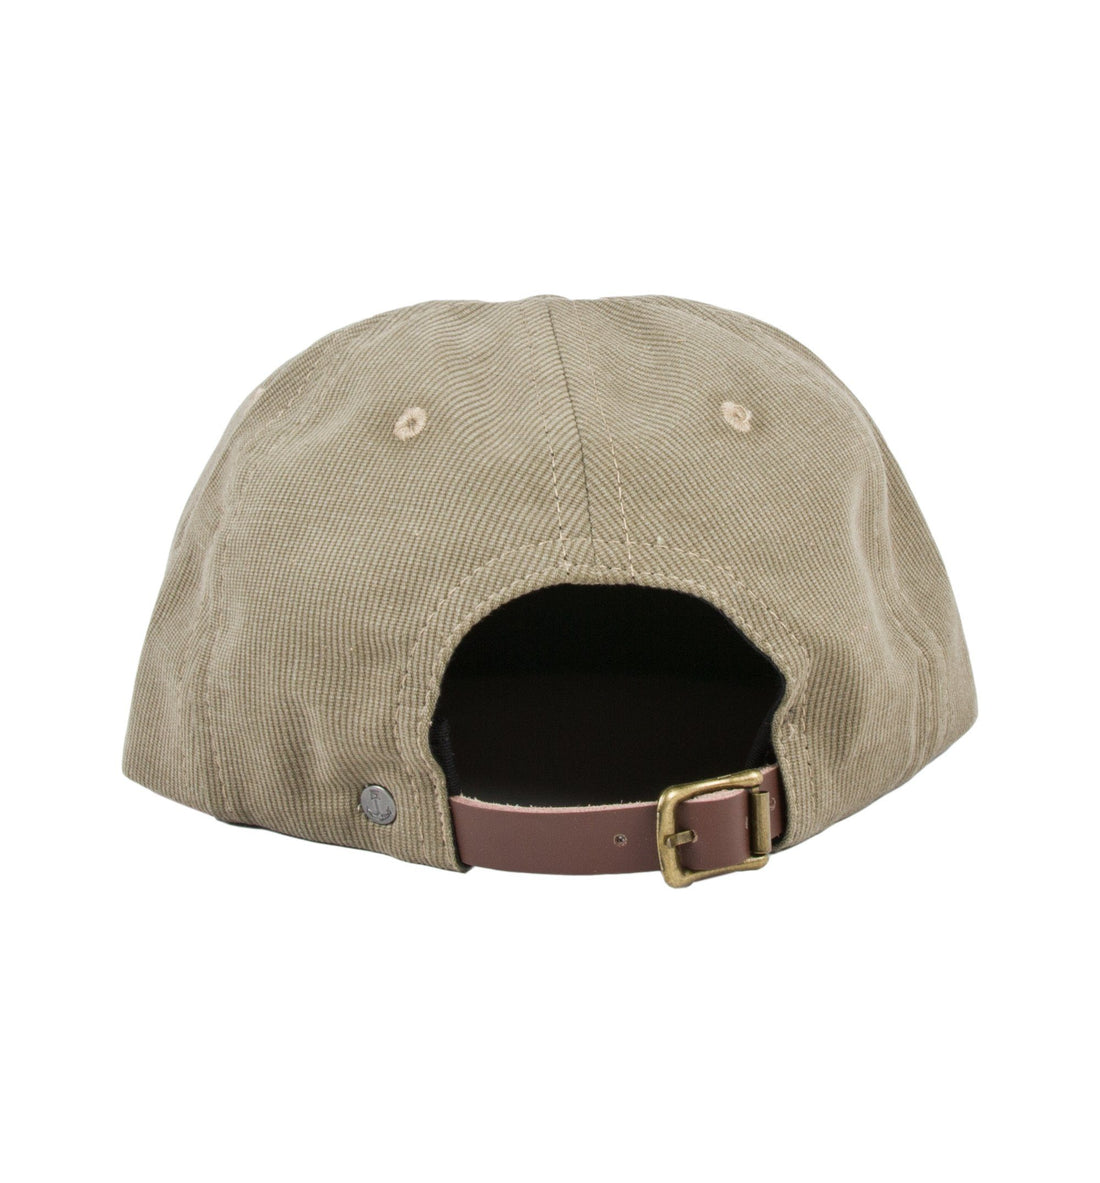 16f12e47178 ... Apache Hat - Headwear - Iron and Resin ...